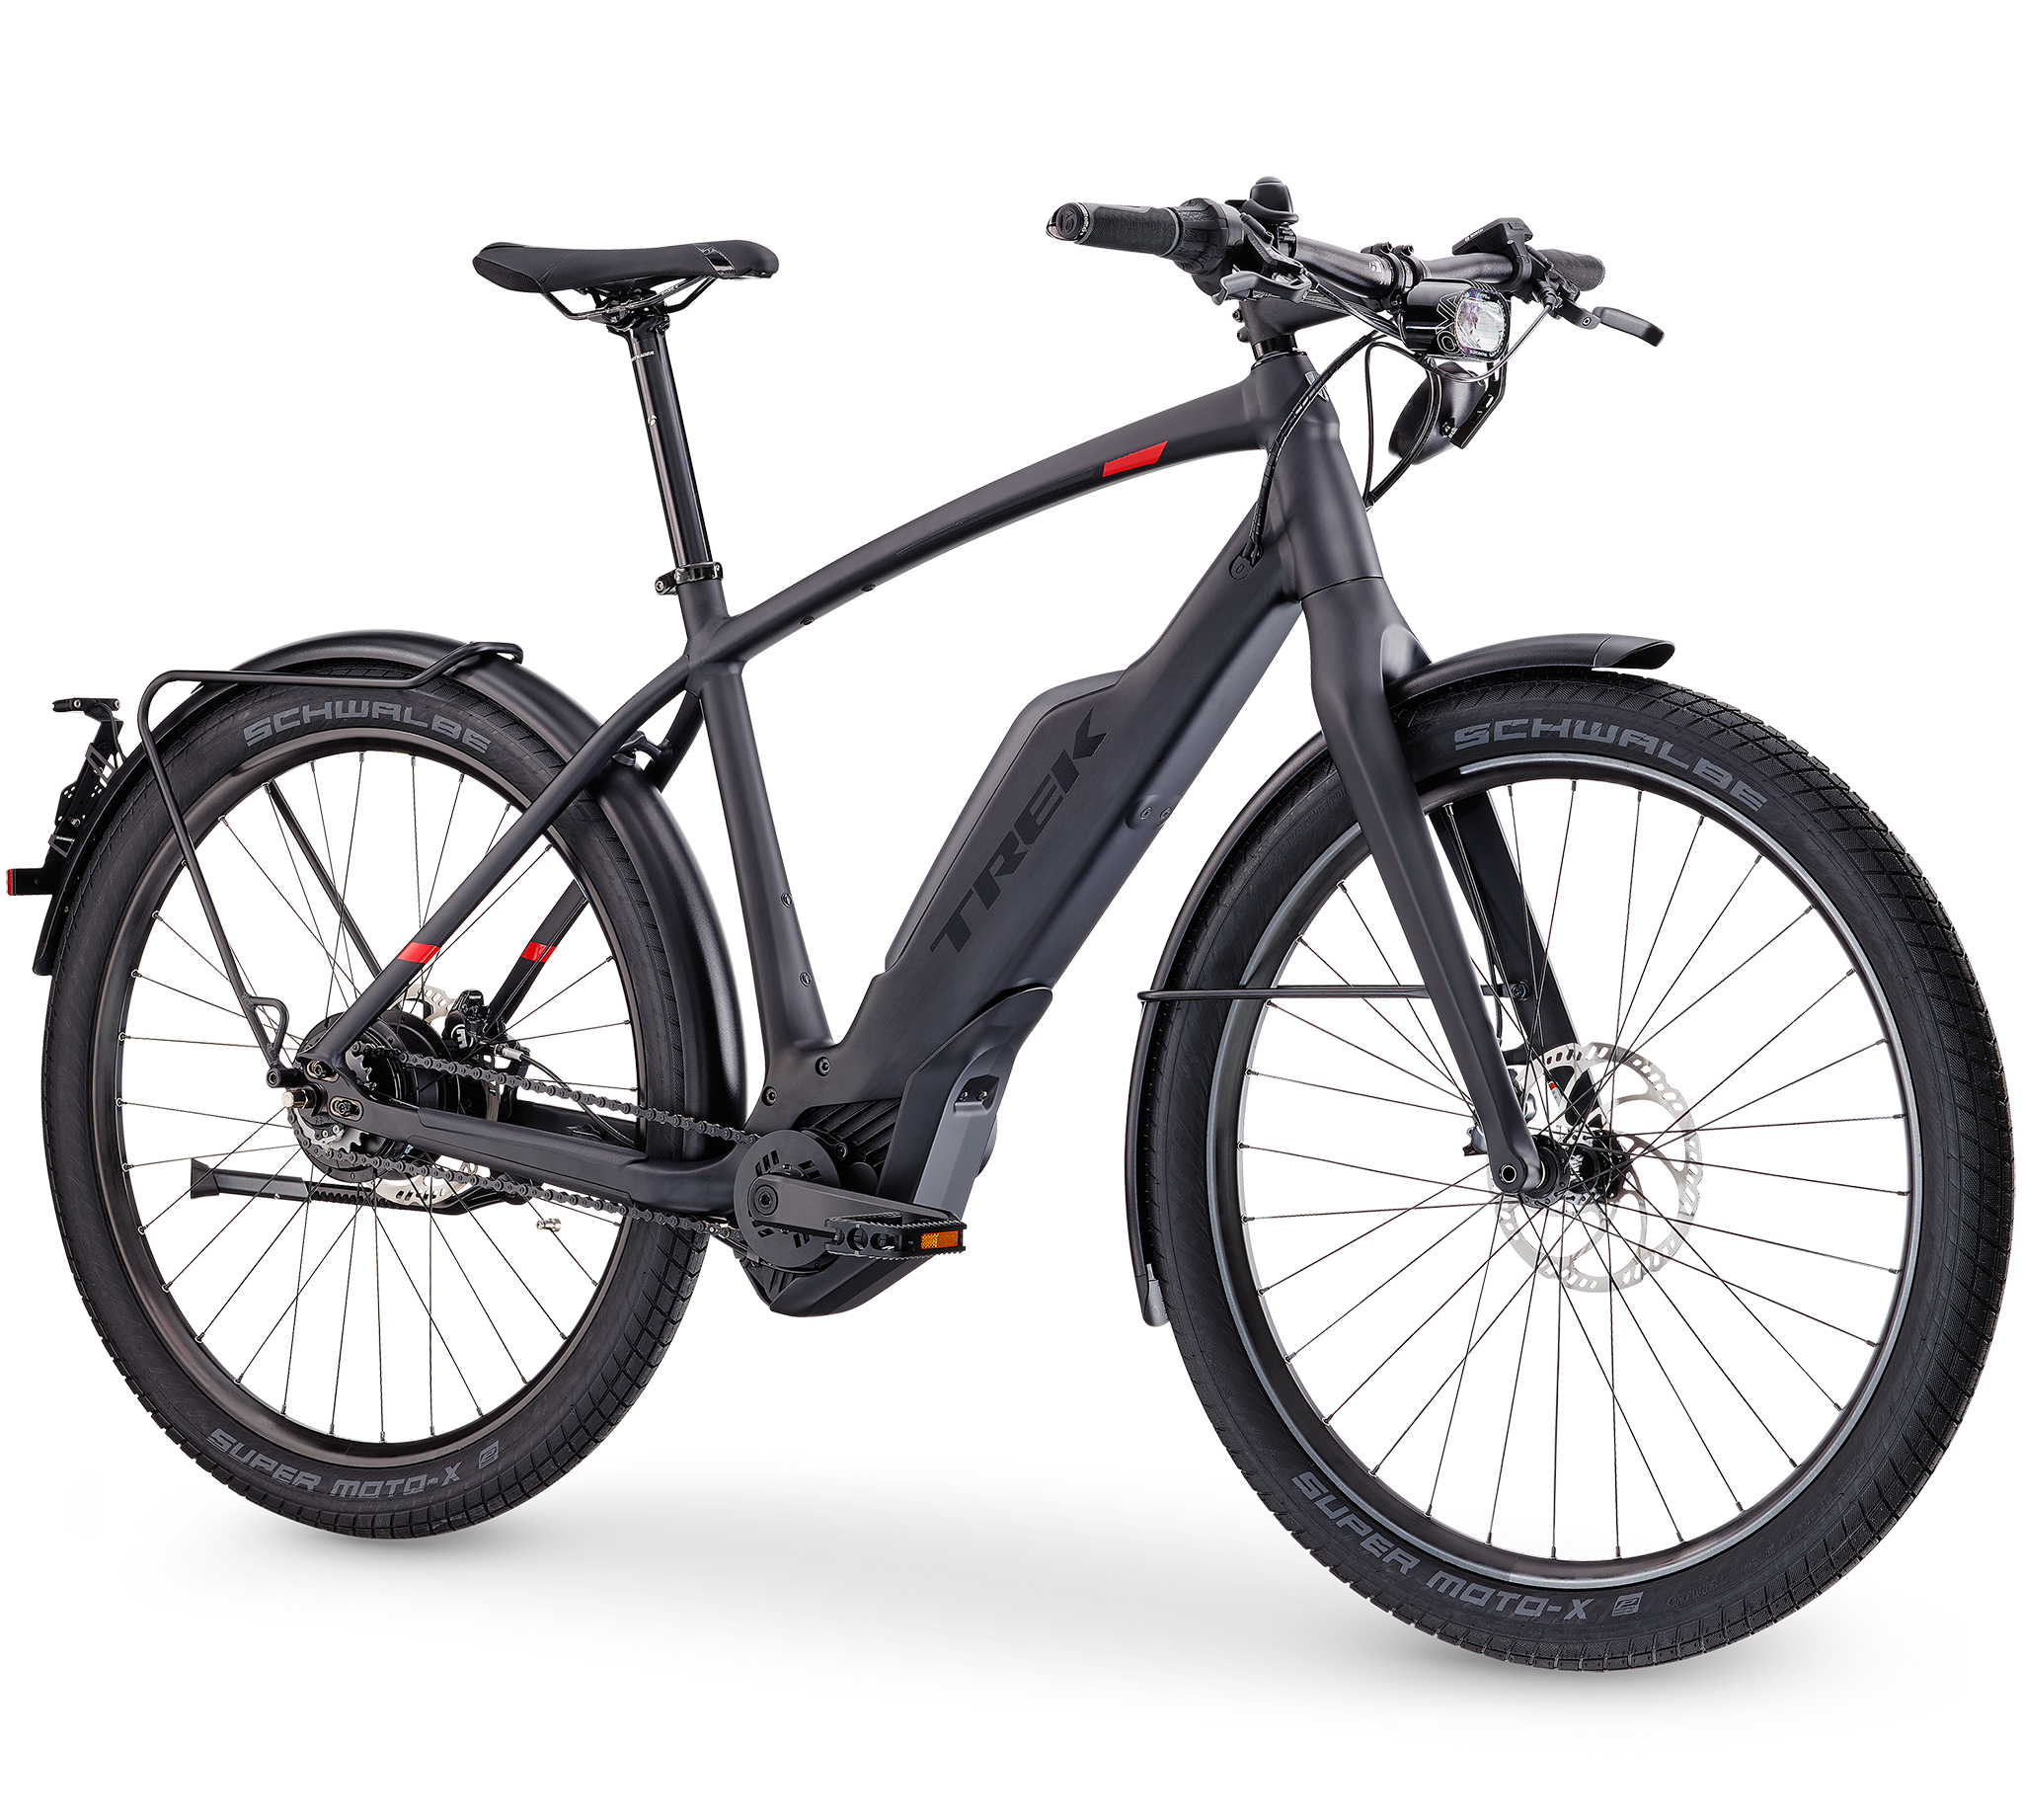 SUPER COMMUTER+ 9S - Super Commuter+ is the electric bicycle that makes getting where you need to go exactly where you want to be. Size 55cm.